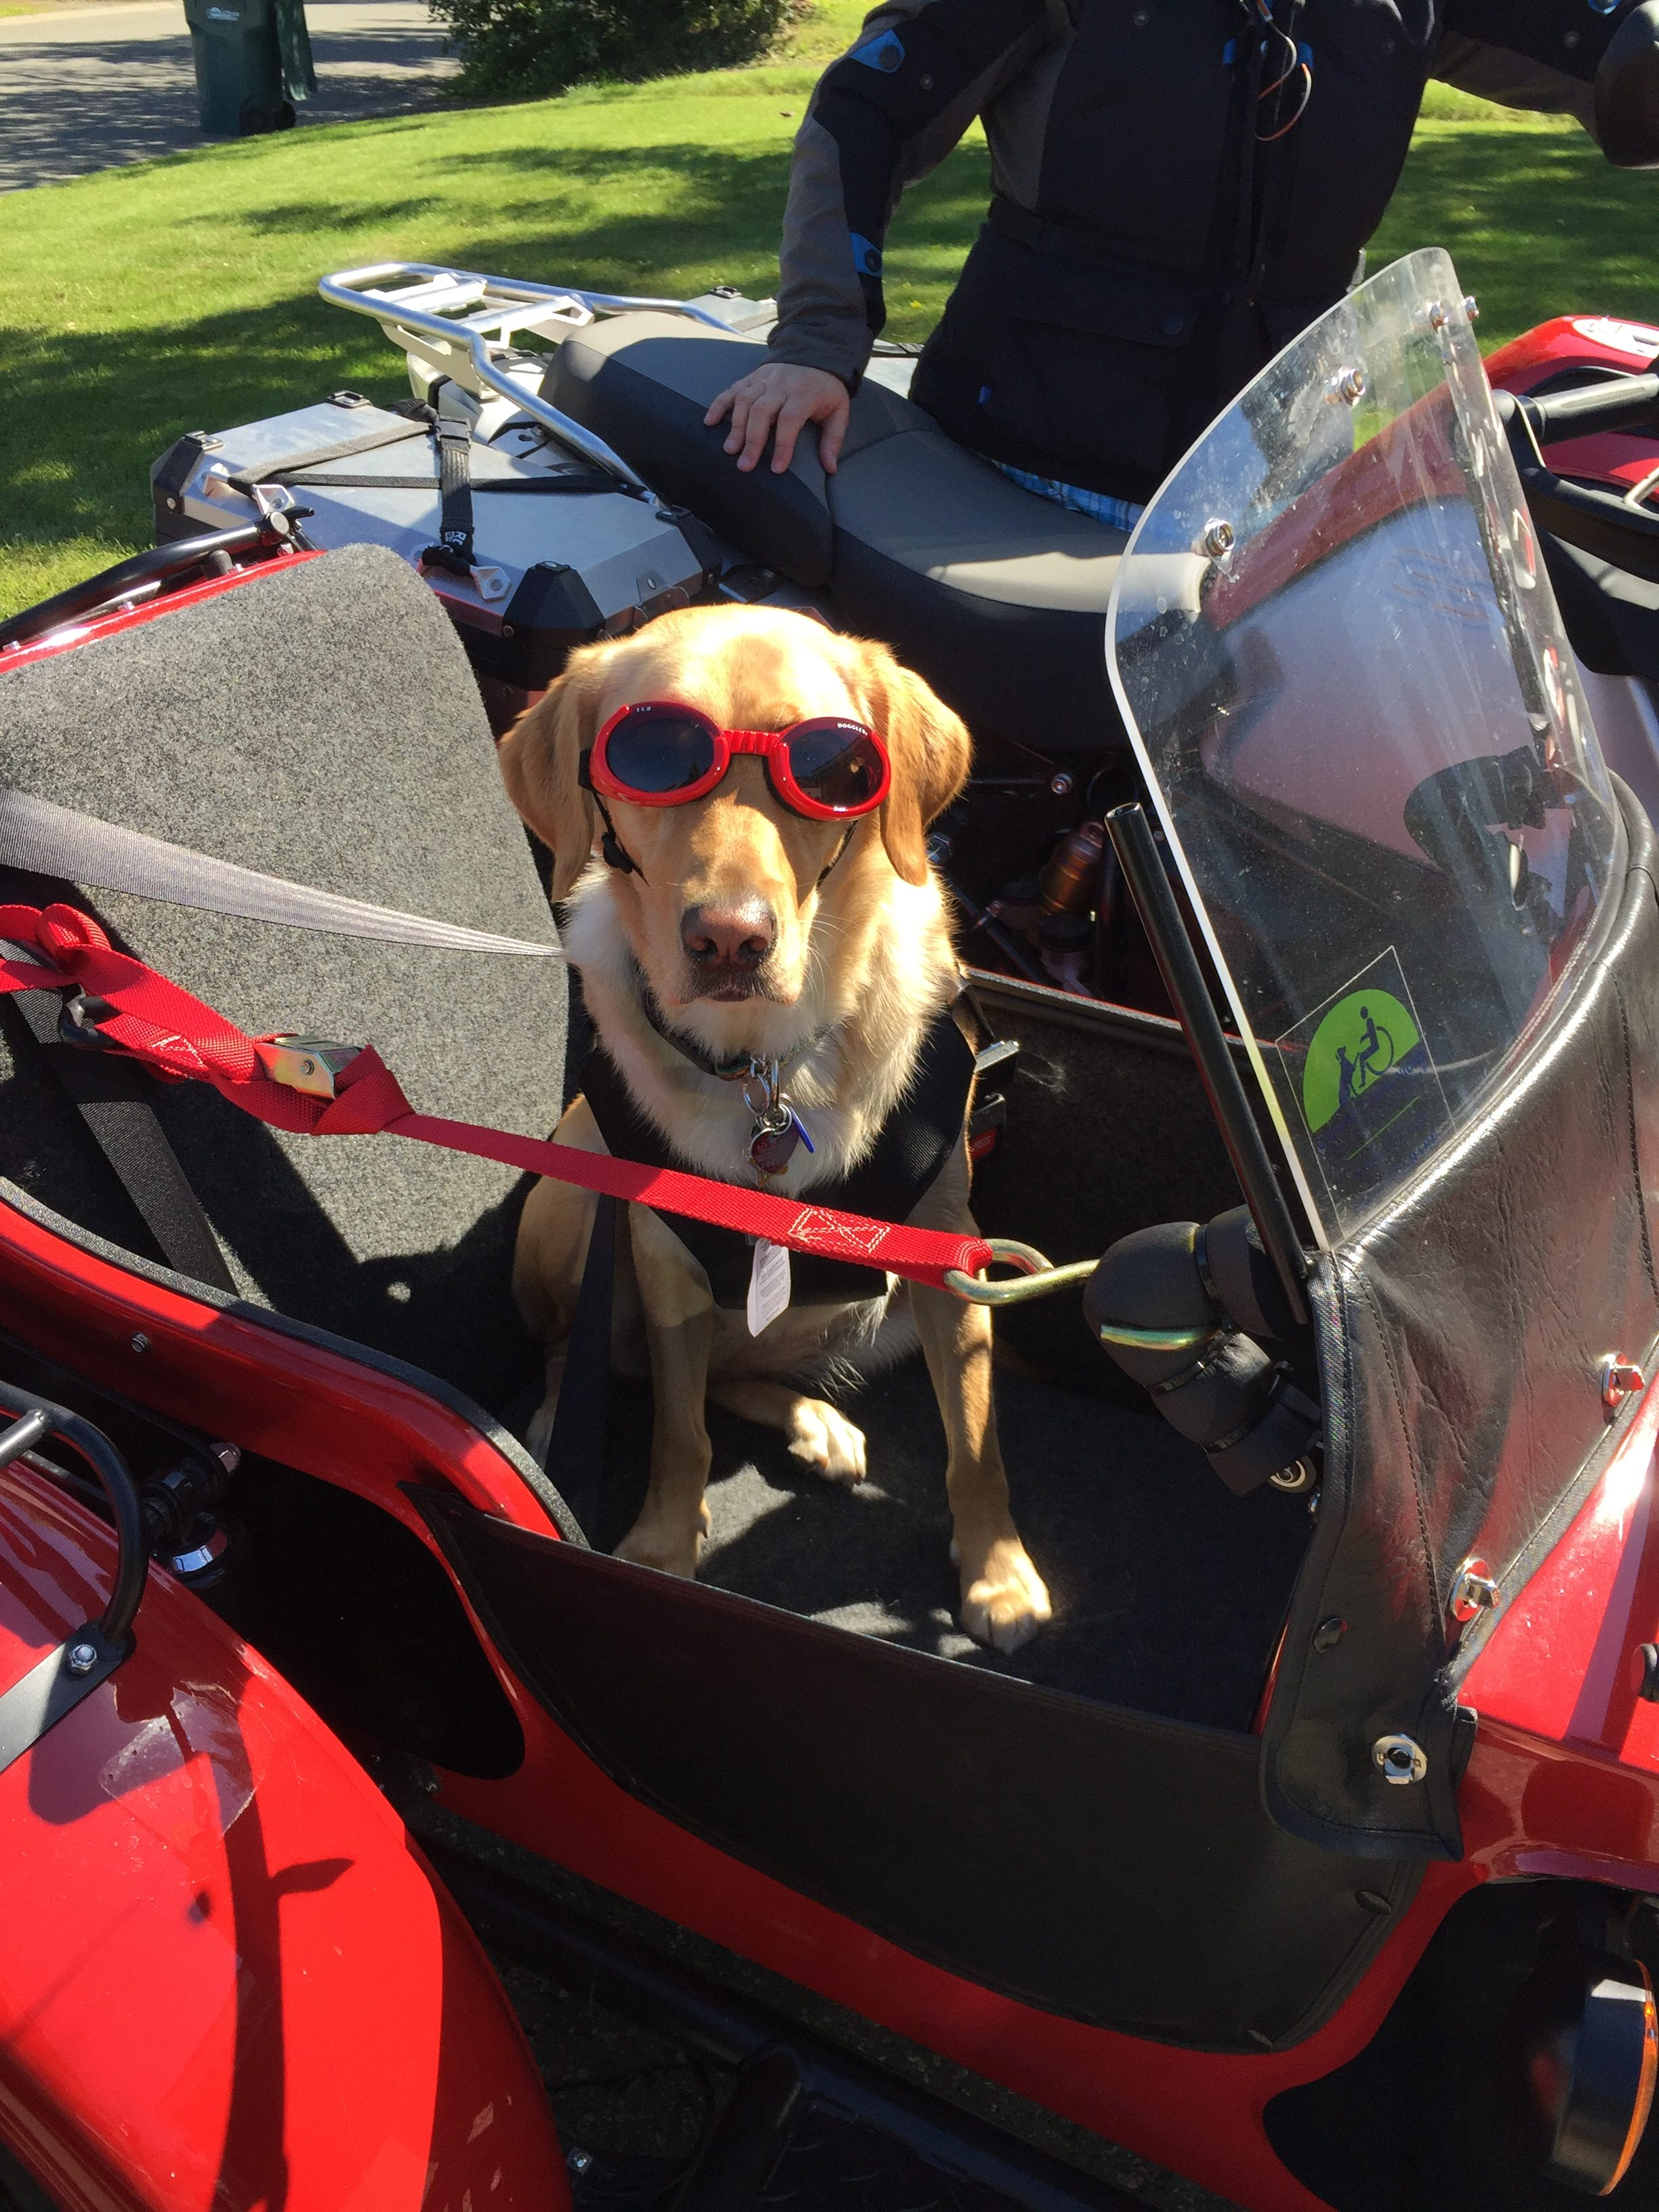 Rasta sitting in the side car or a red motorcycle with dog goggles.